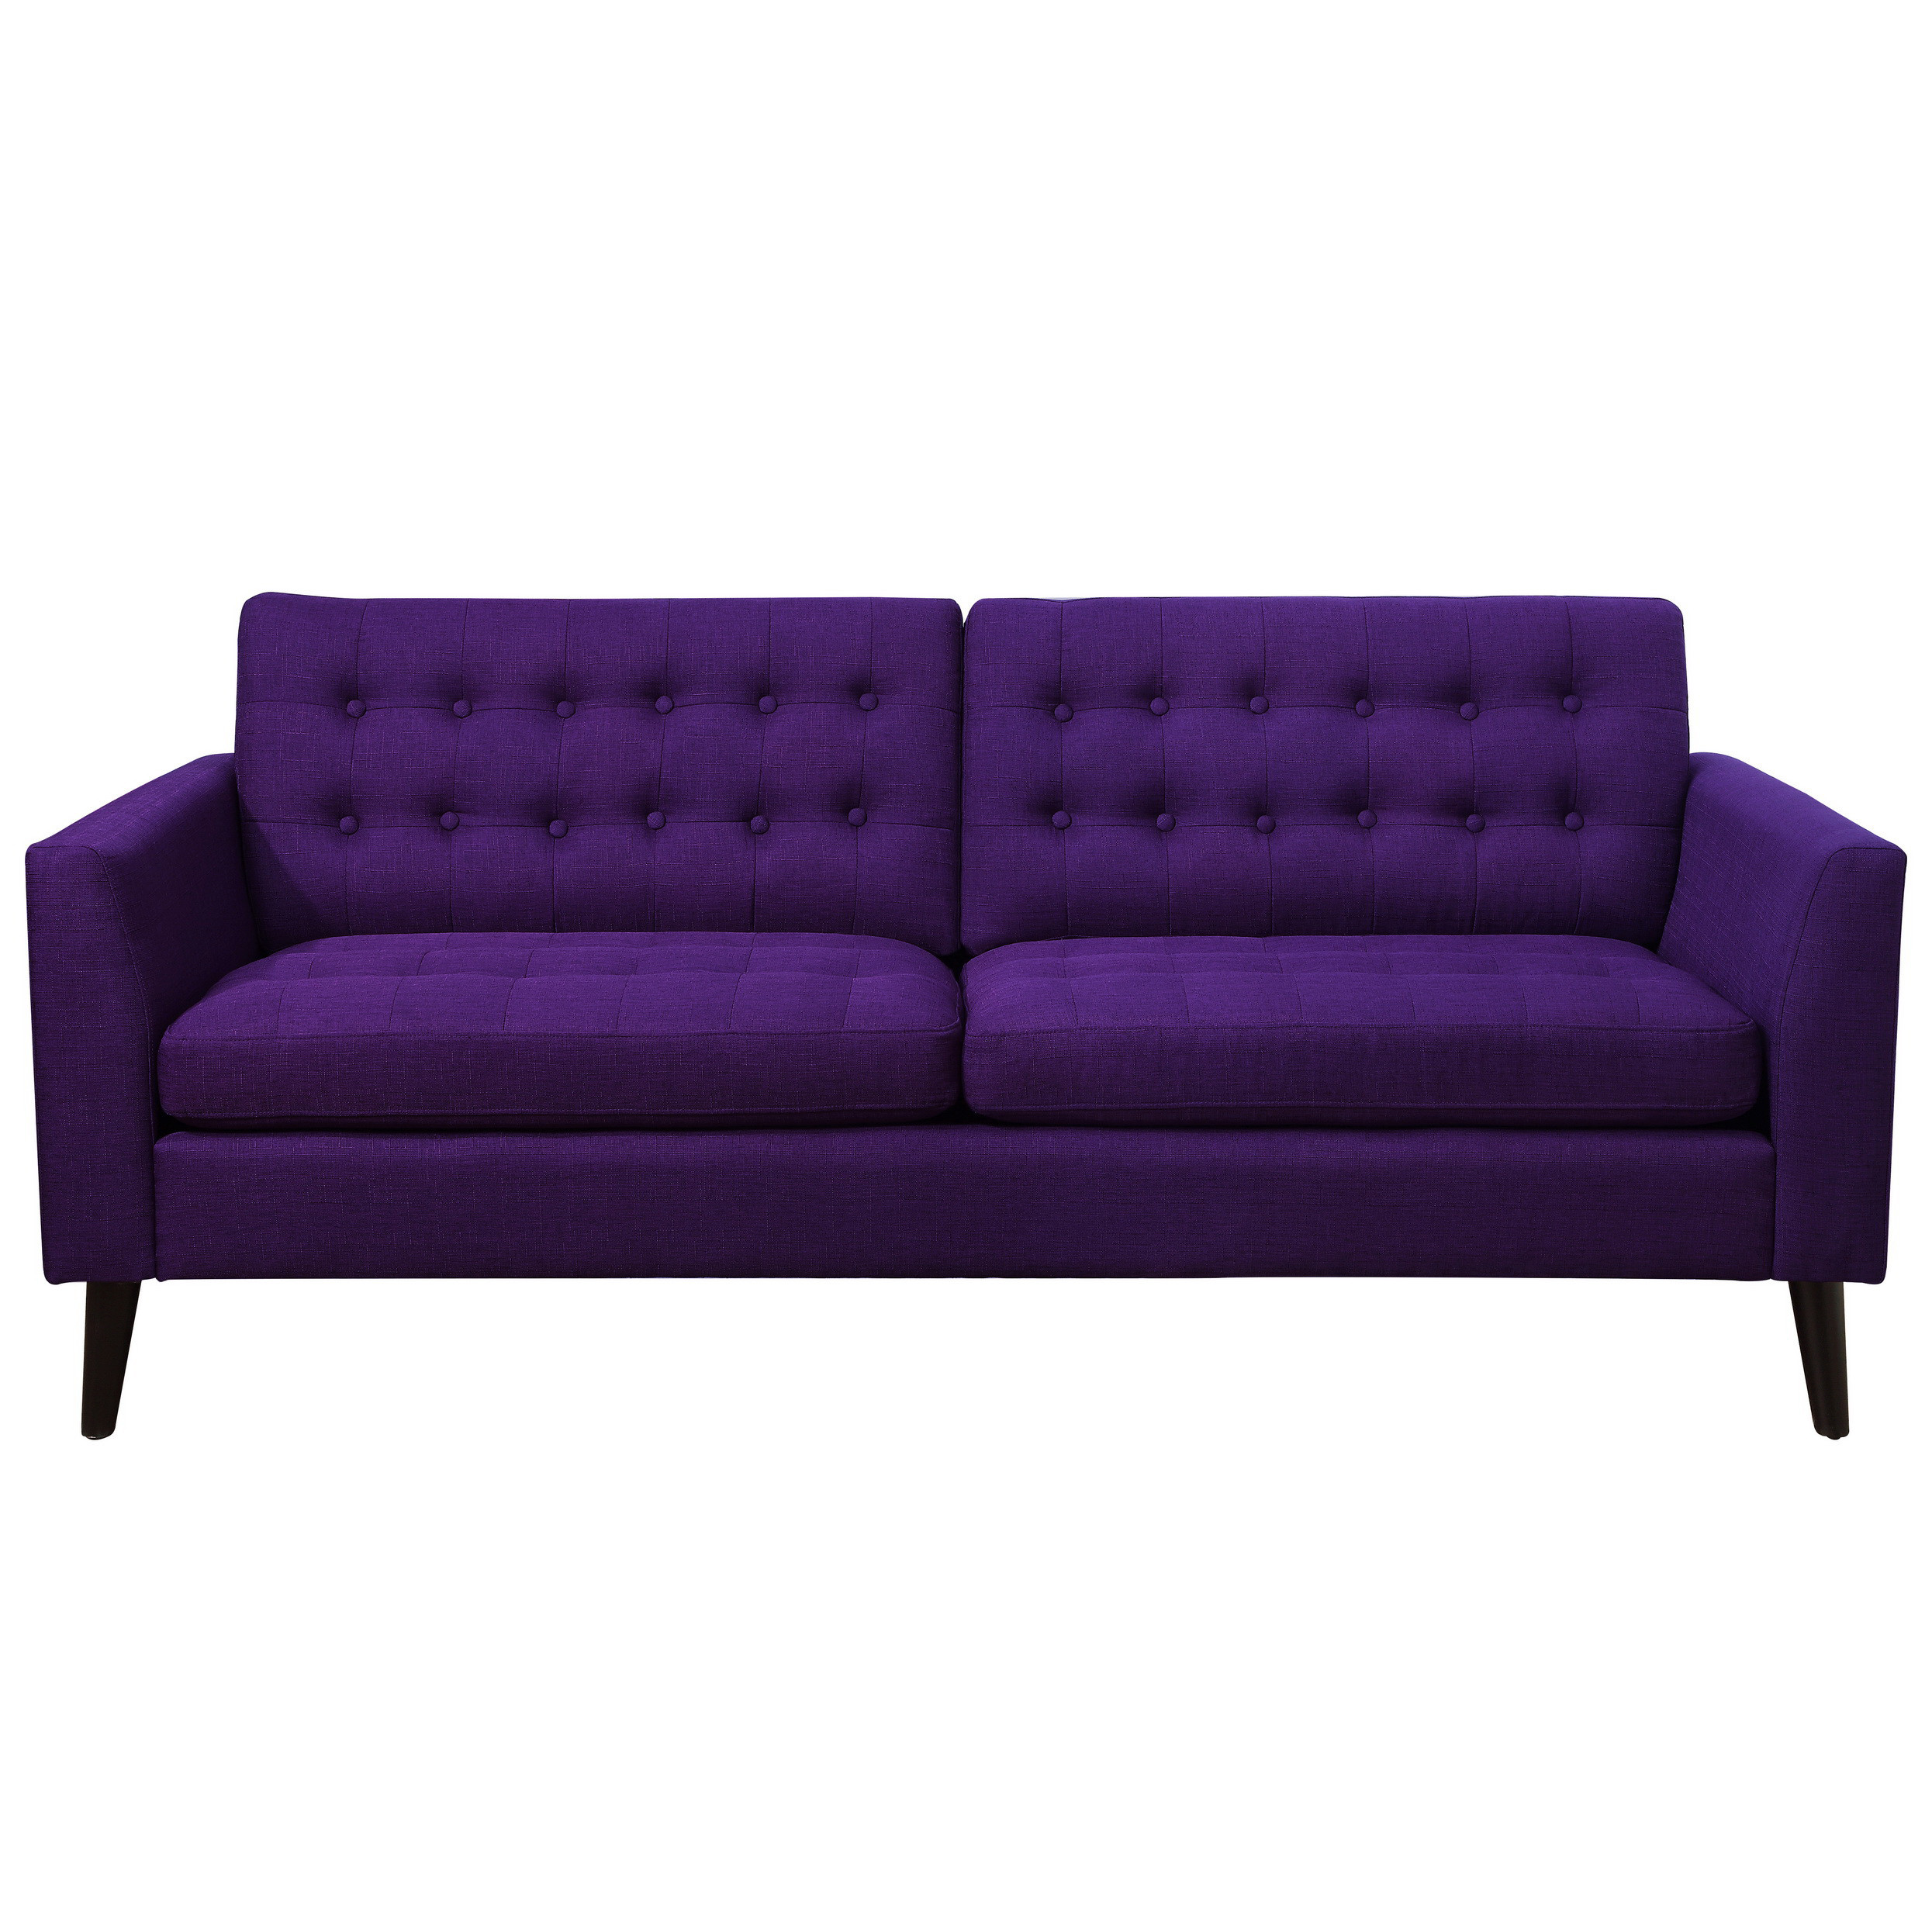 Aubergine And Grey Living Room | Eggplant Colored Sofa | Purple Sofa